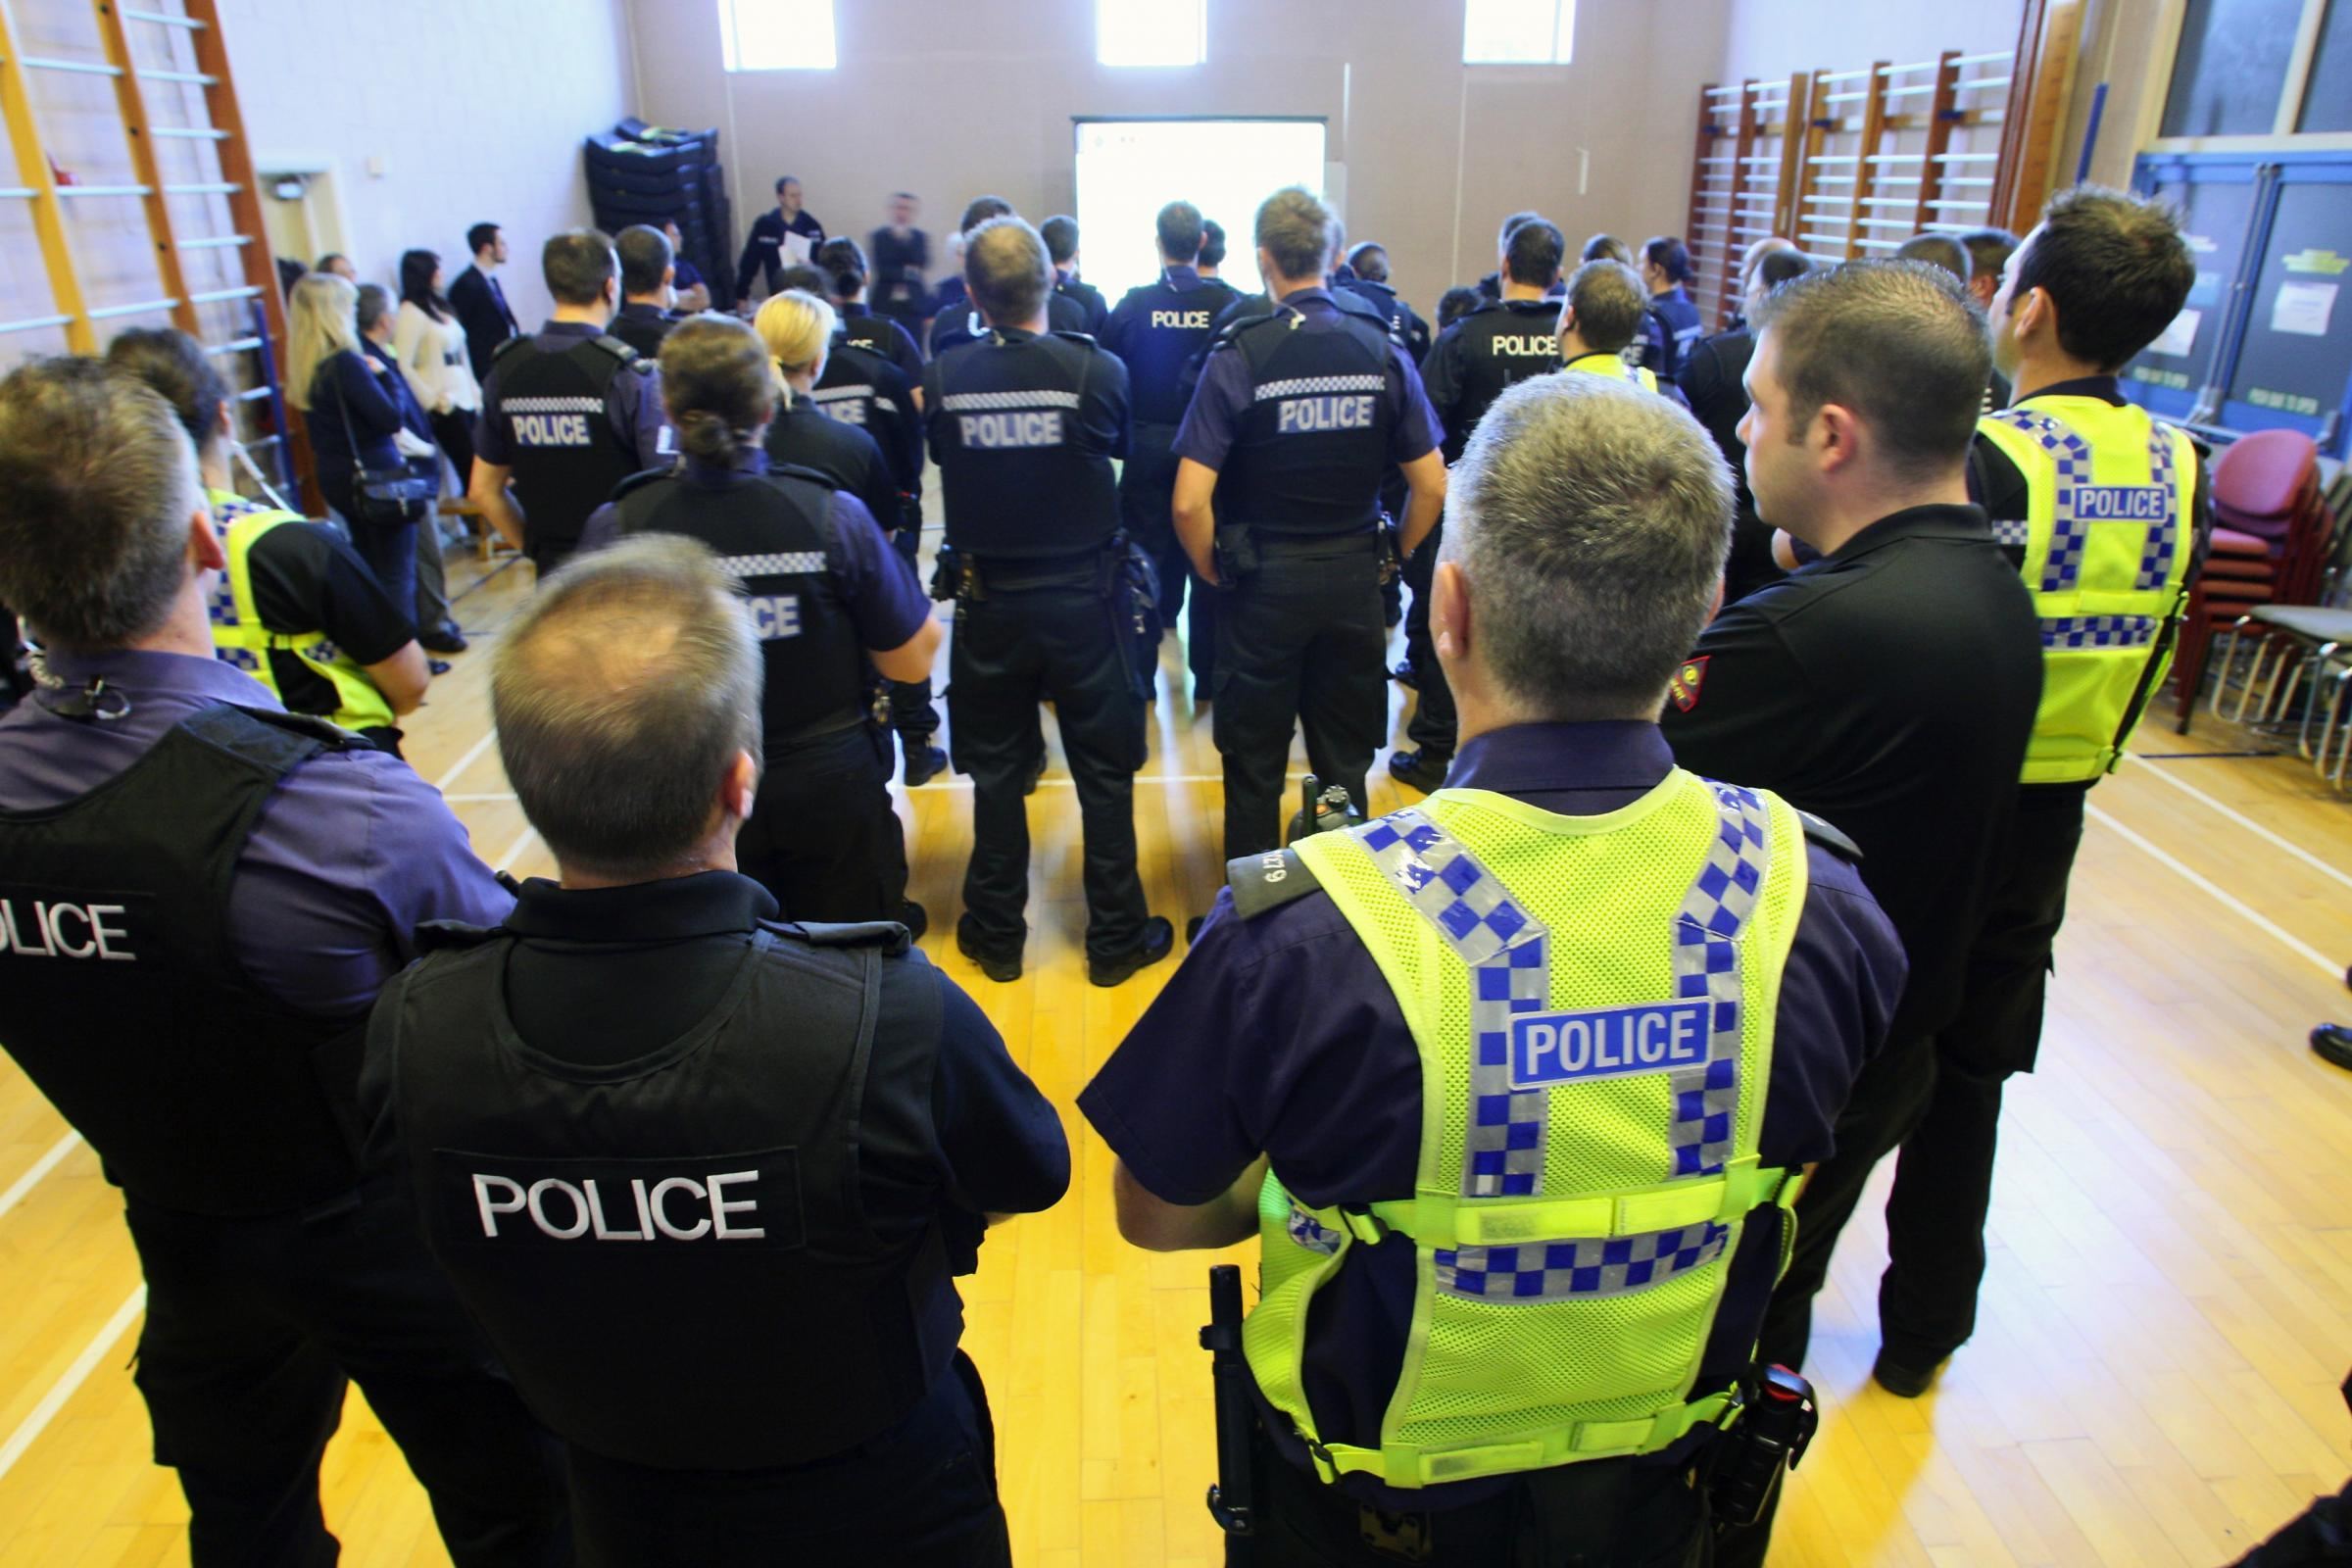 Dorset residents are being asked for their views on paying £2 to fund policing